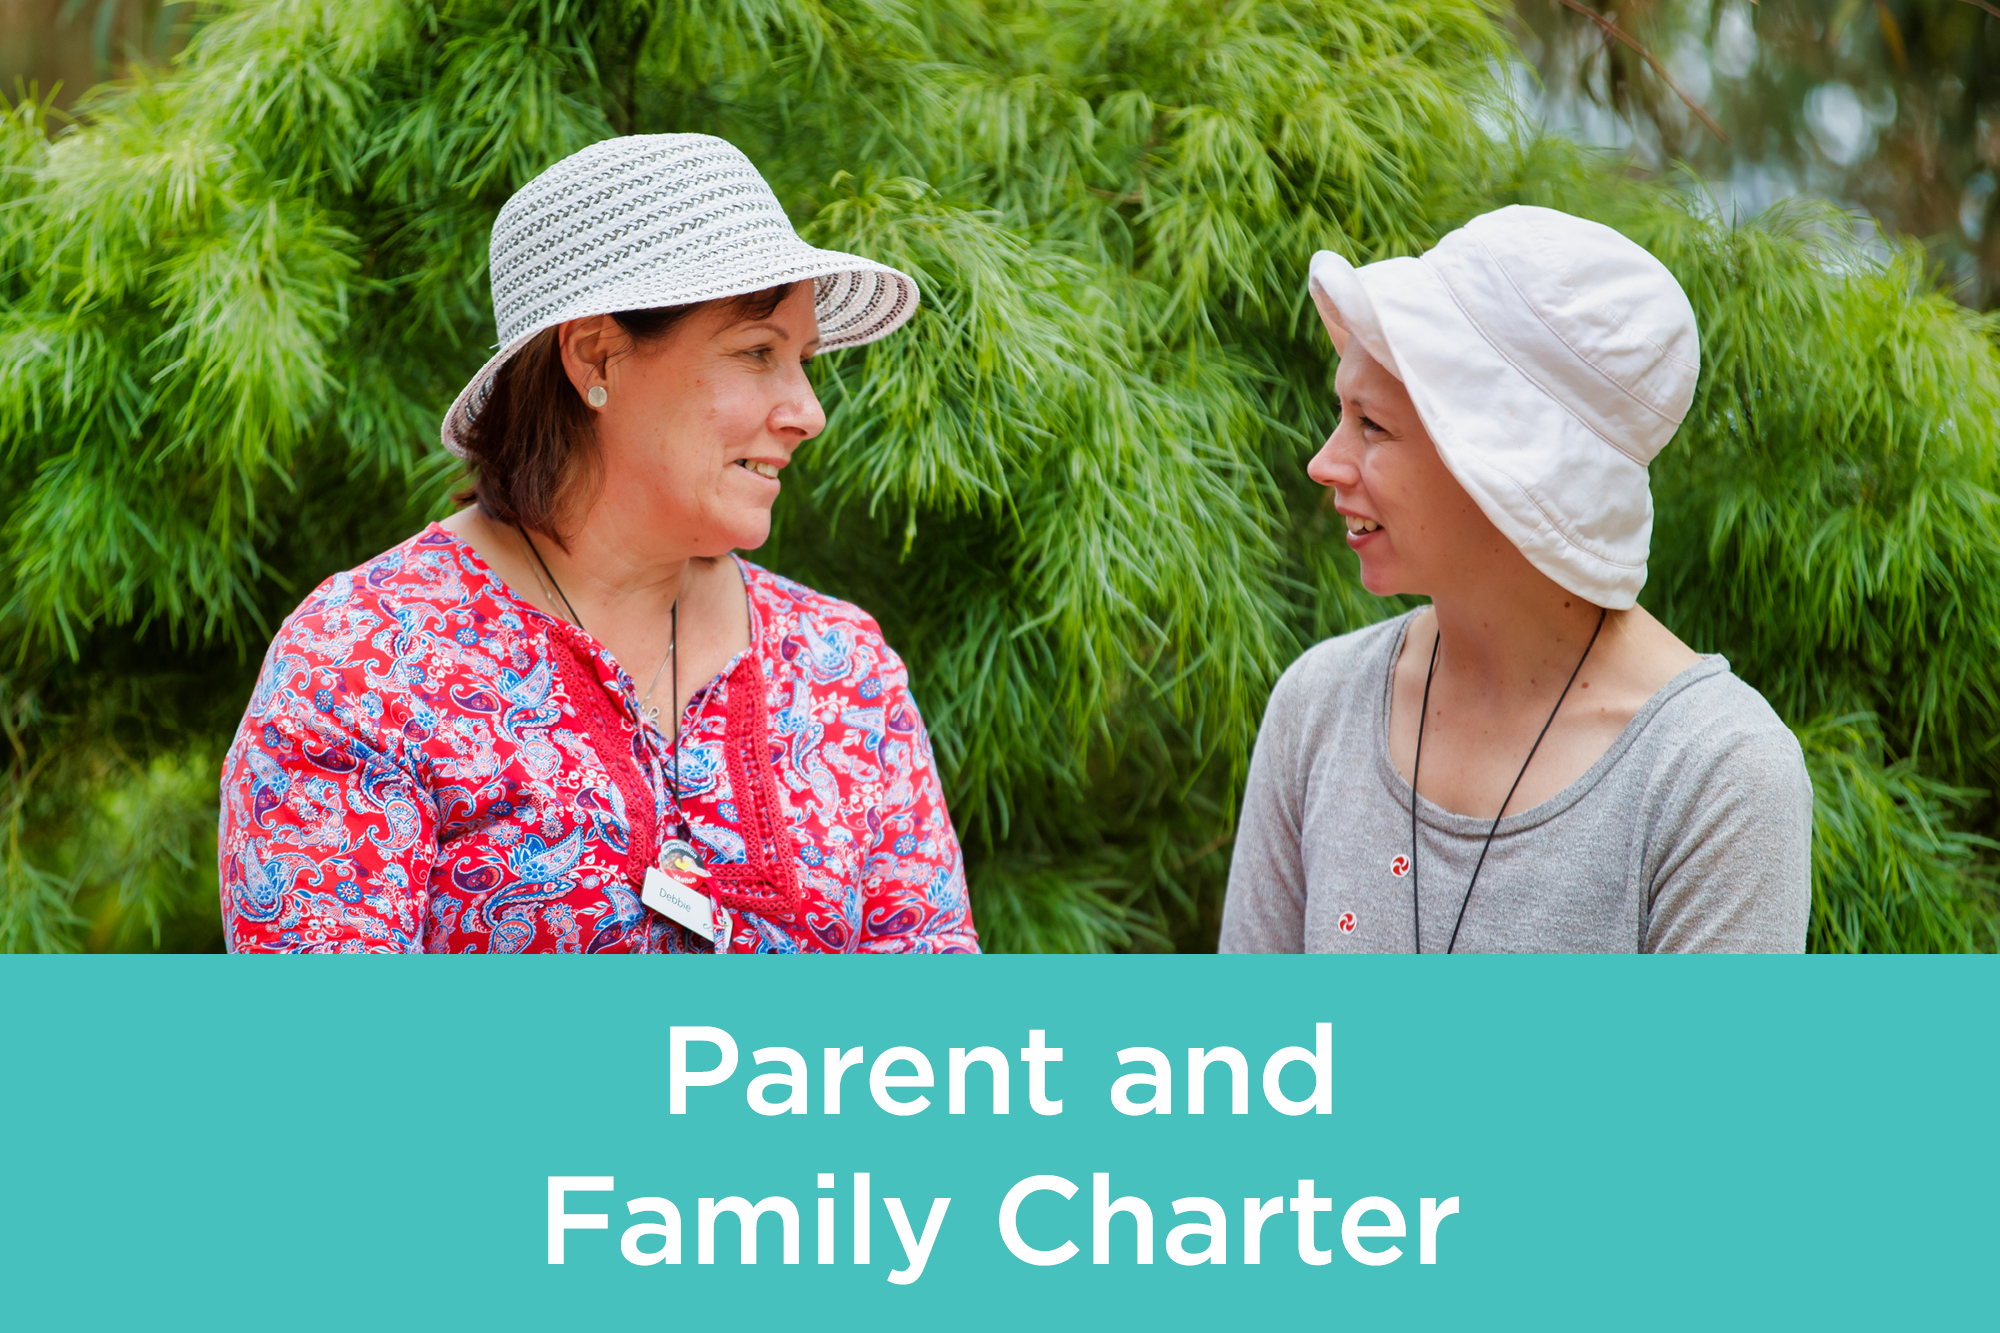 Parent and family charter